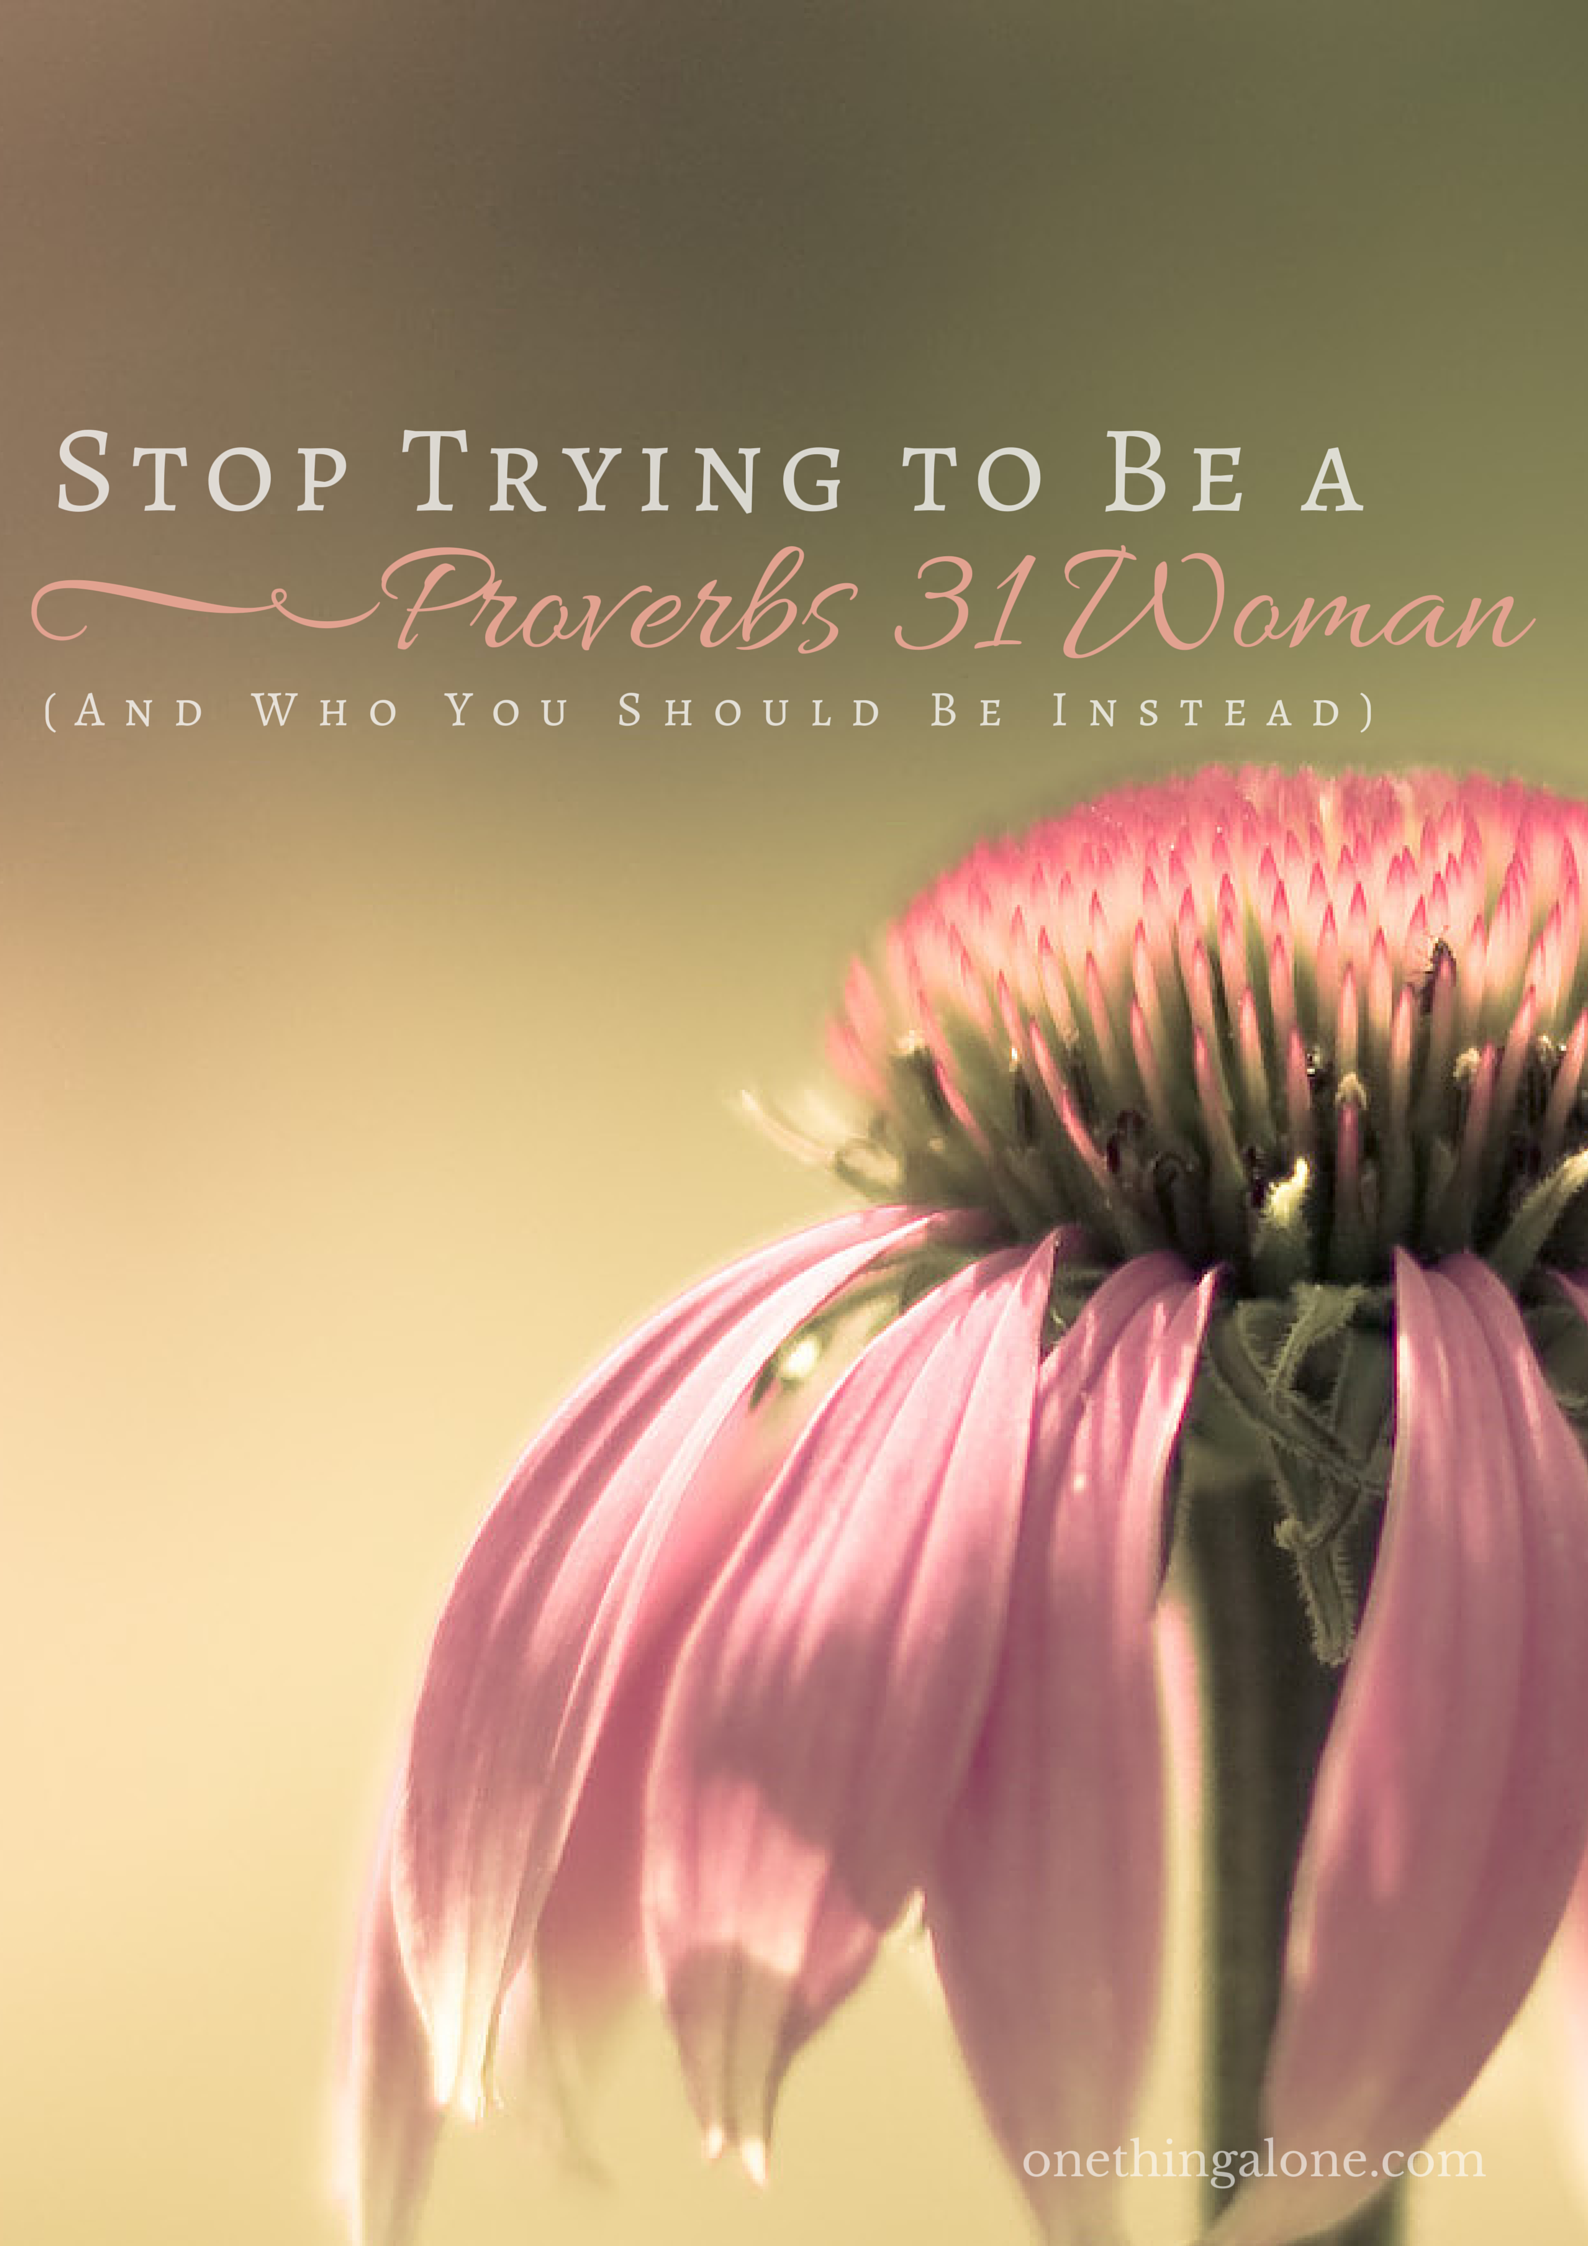 Stop trying to be a Proverbs 31 Woman (And Who You Should Be Instead)